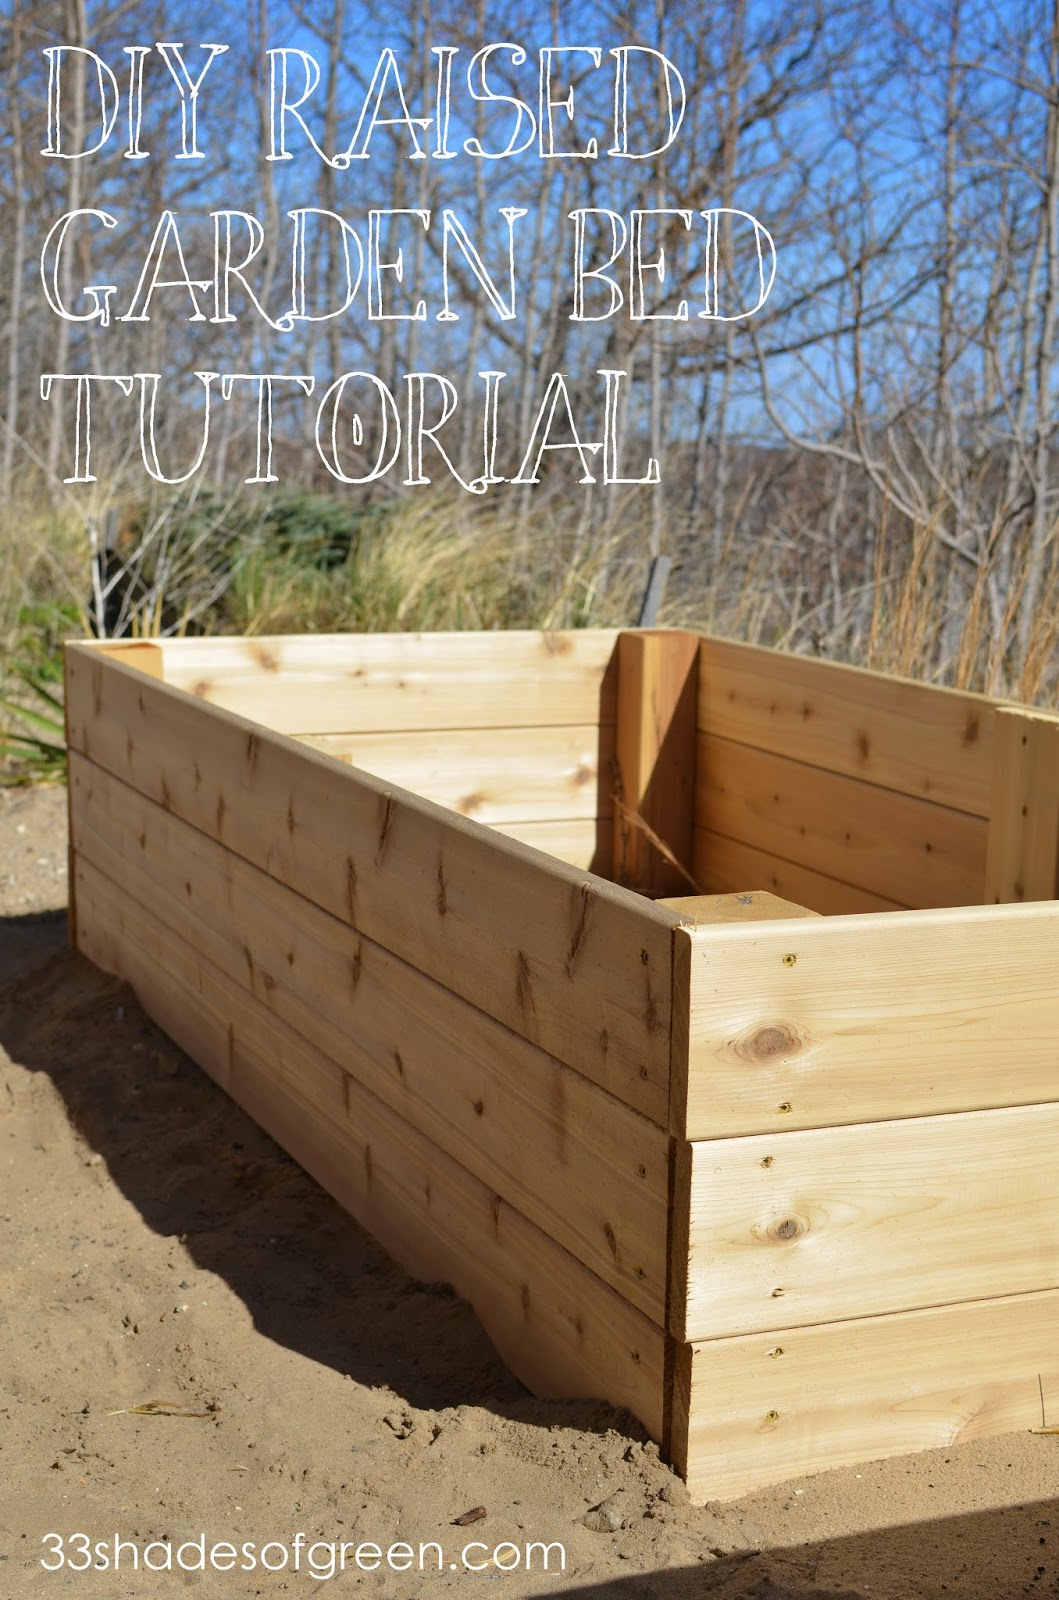 Instructions For Making Raised Garden Beds Easy Diy Raised Garden Bed Tutorial 33 Shades Of Green